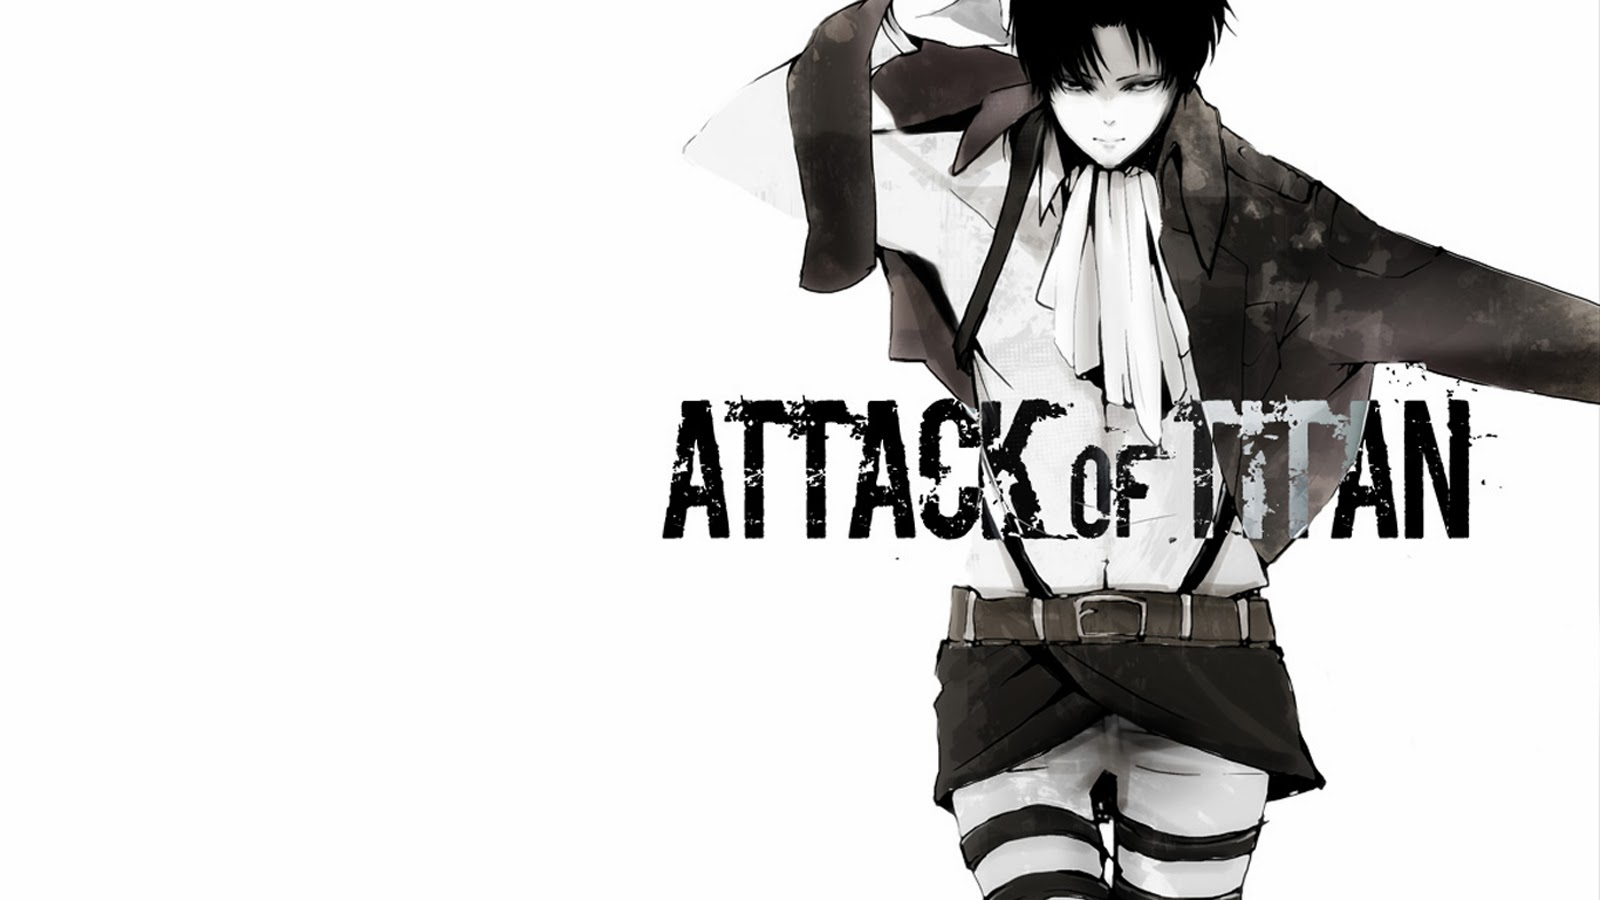 levi titan attack on titan shingeki no kyojin hd wallpaper 1600x900 5f 1600x900